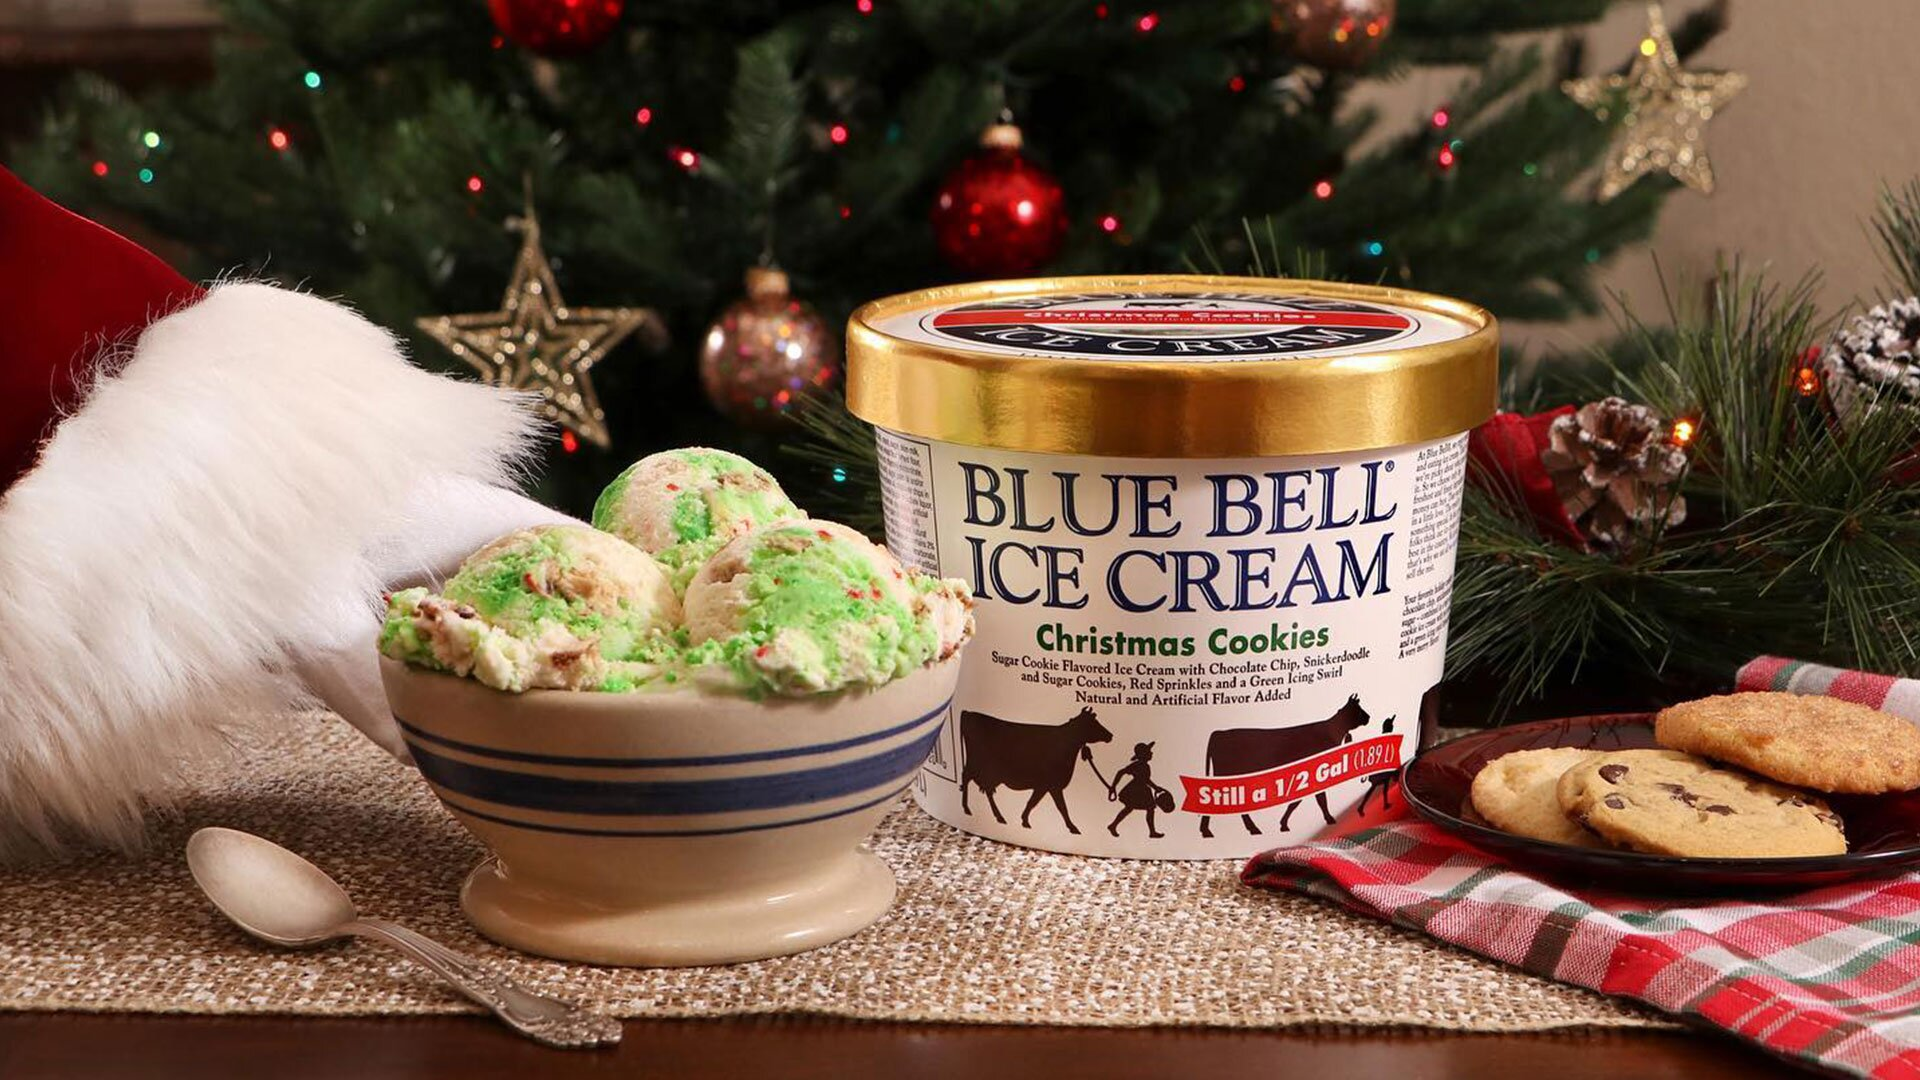 Bluebell Christmas Cookie Ice Cream 2020 Blue Bell's Christmas Cookies Ice Cream is Back! | Southern Living